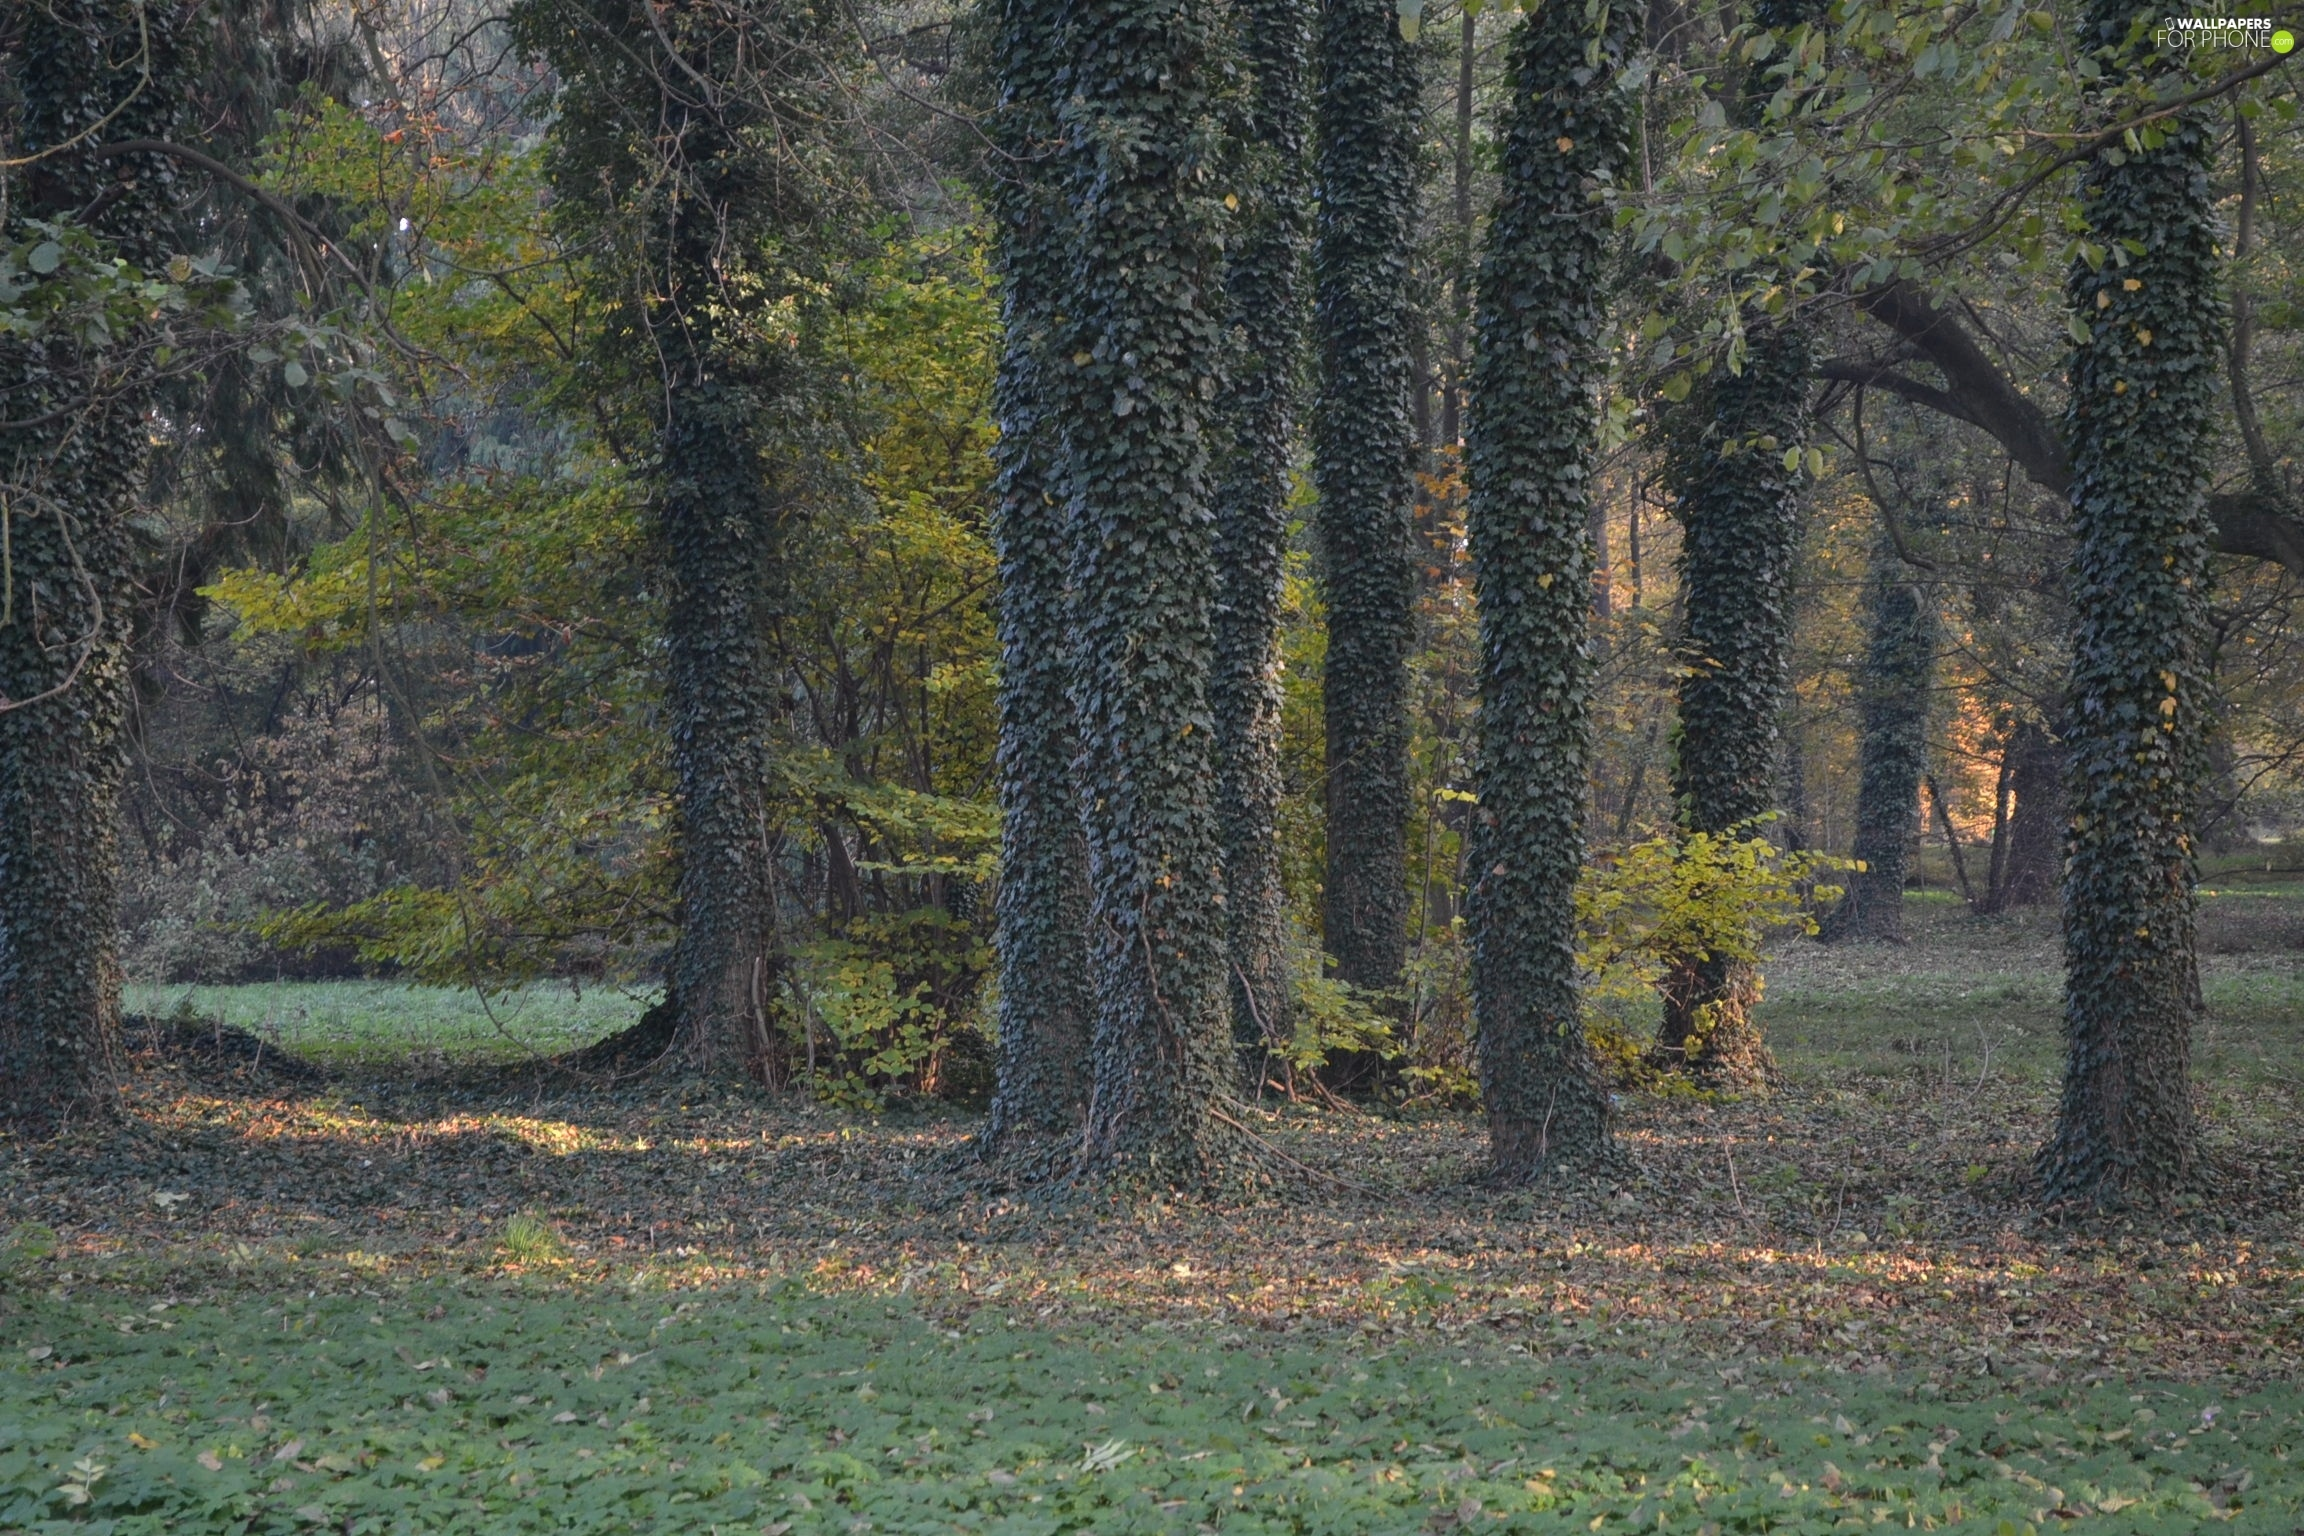 Wooded, trees, grass, Leaf, ivy, viewes